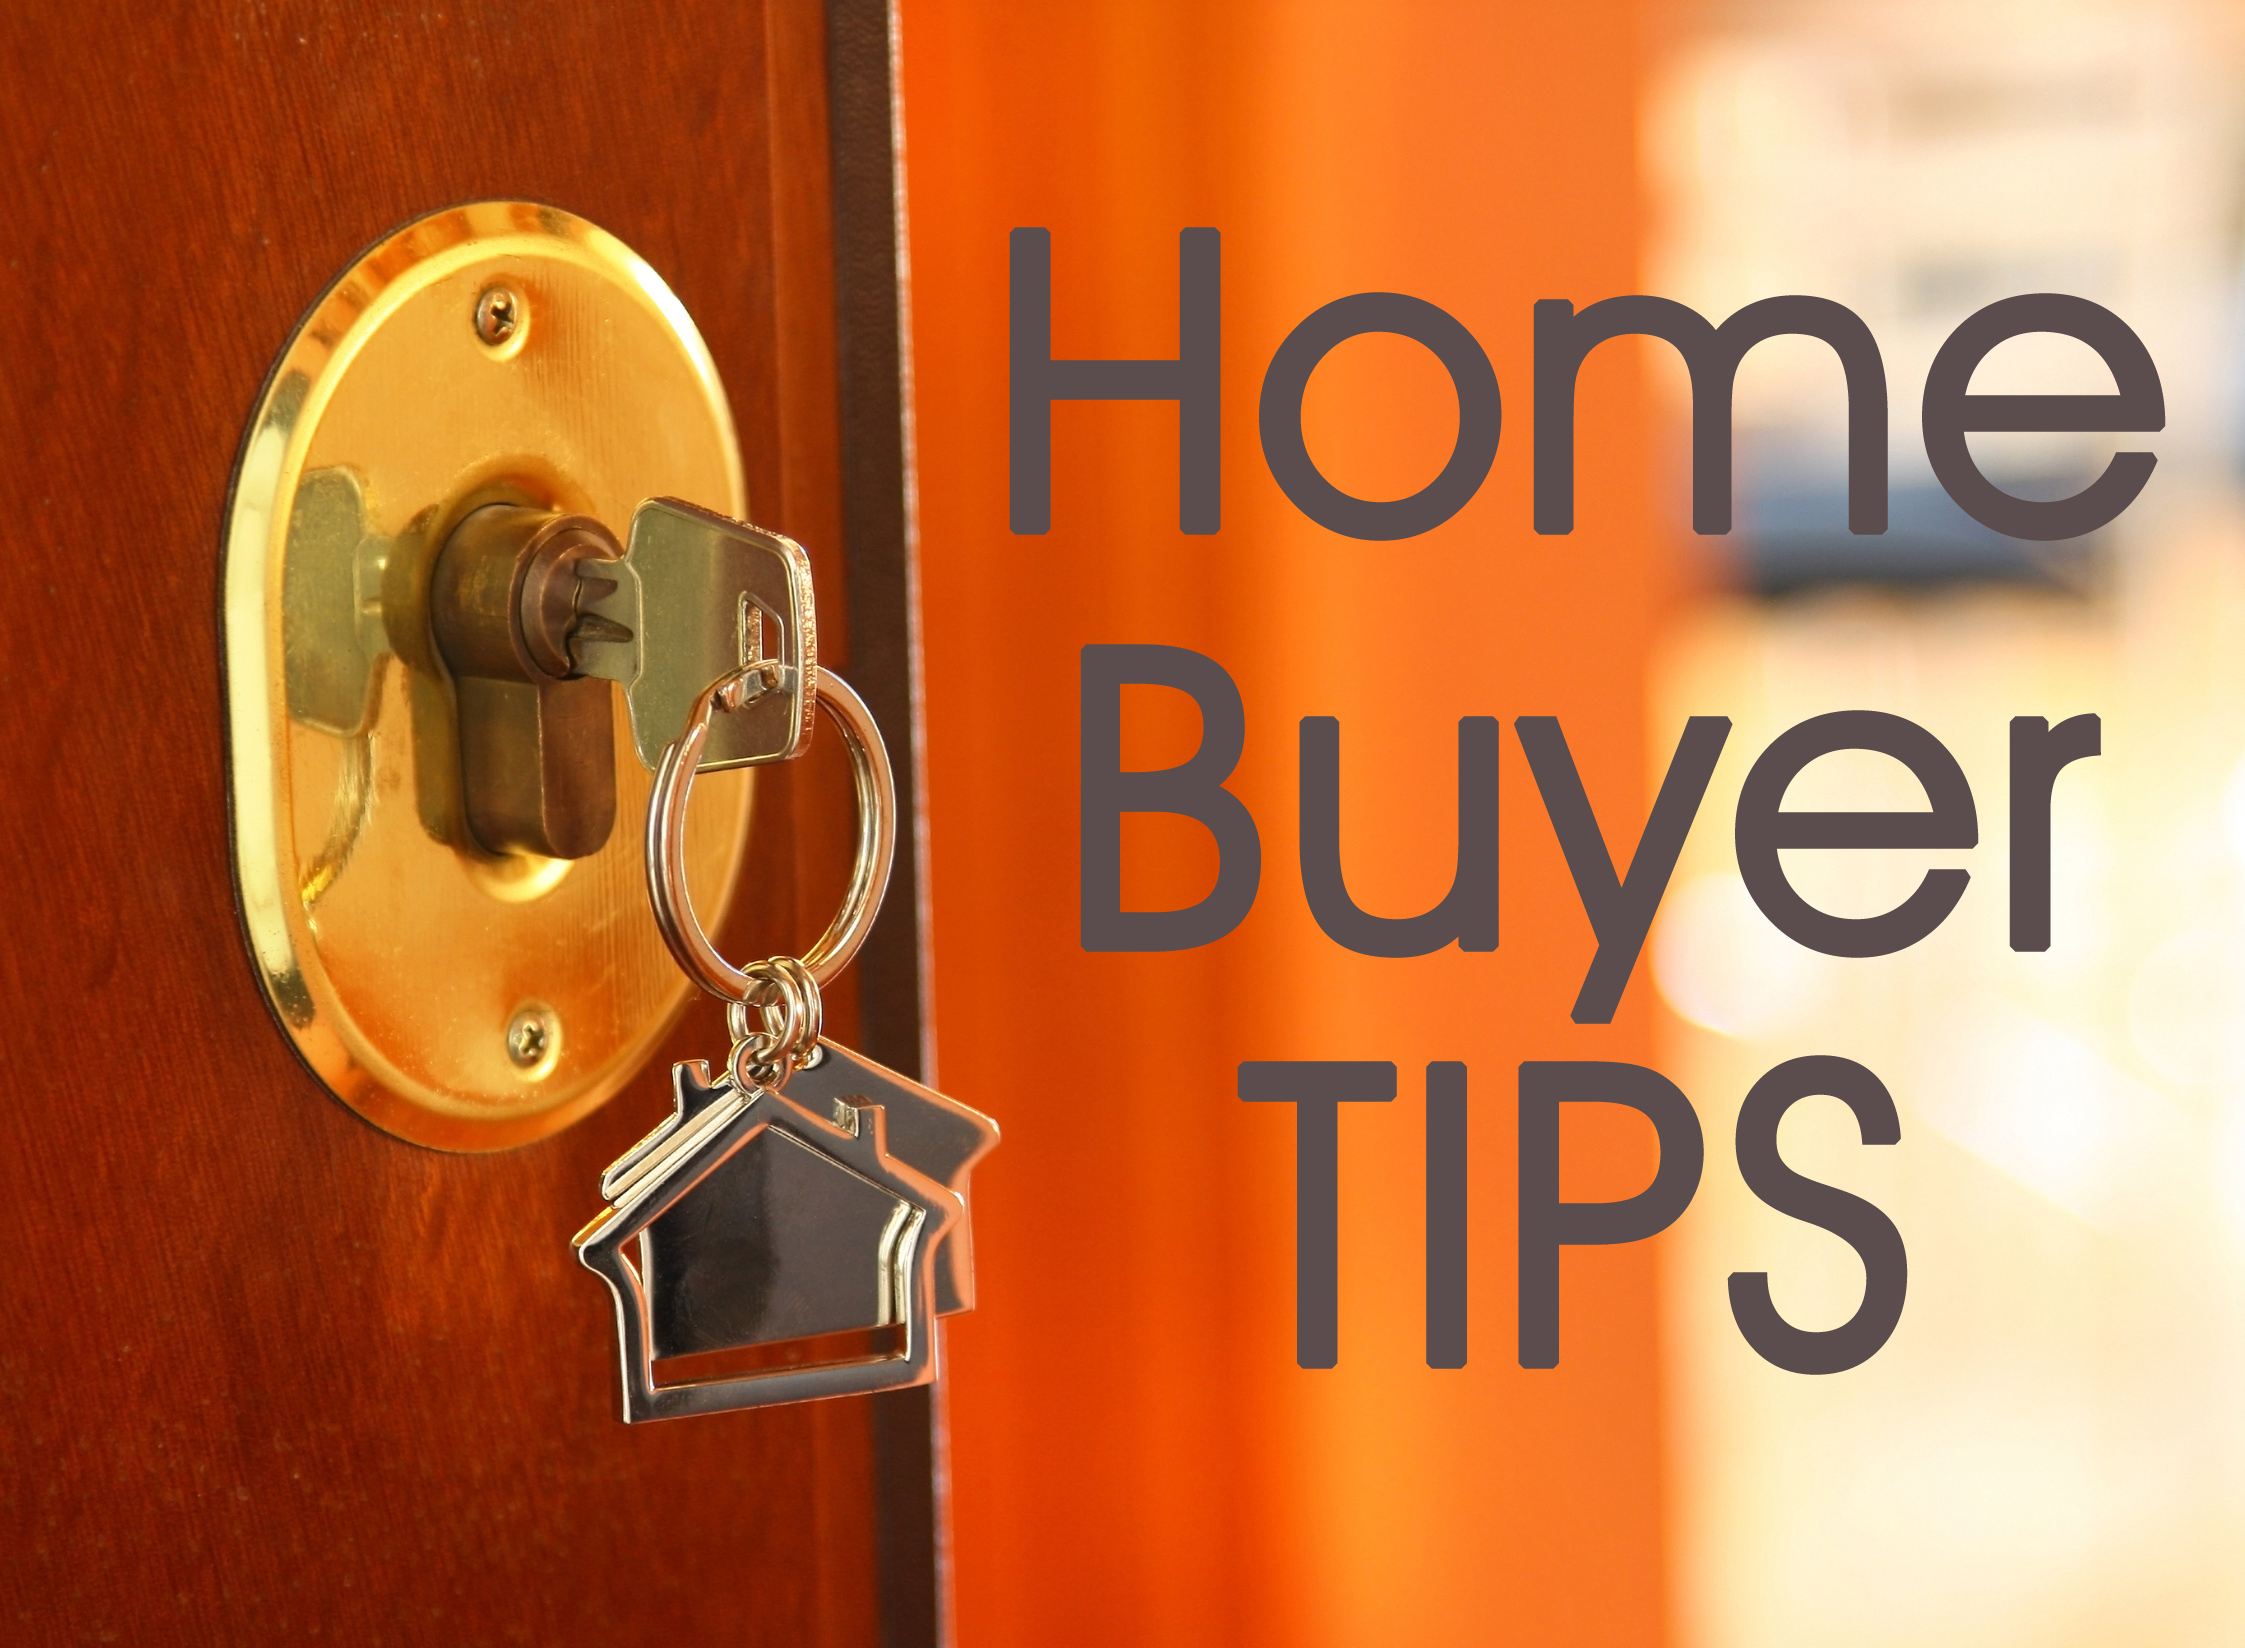 Stunning Things To Understand With Inspections When Buying A Home With Home  Inspection Buyer.